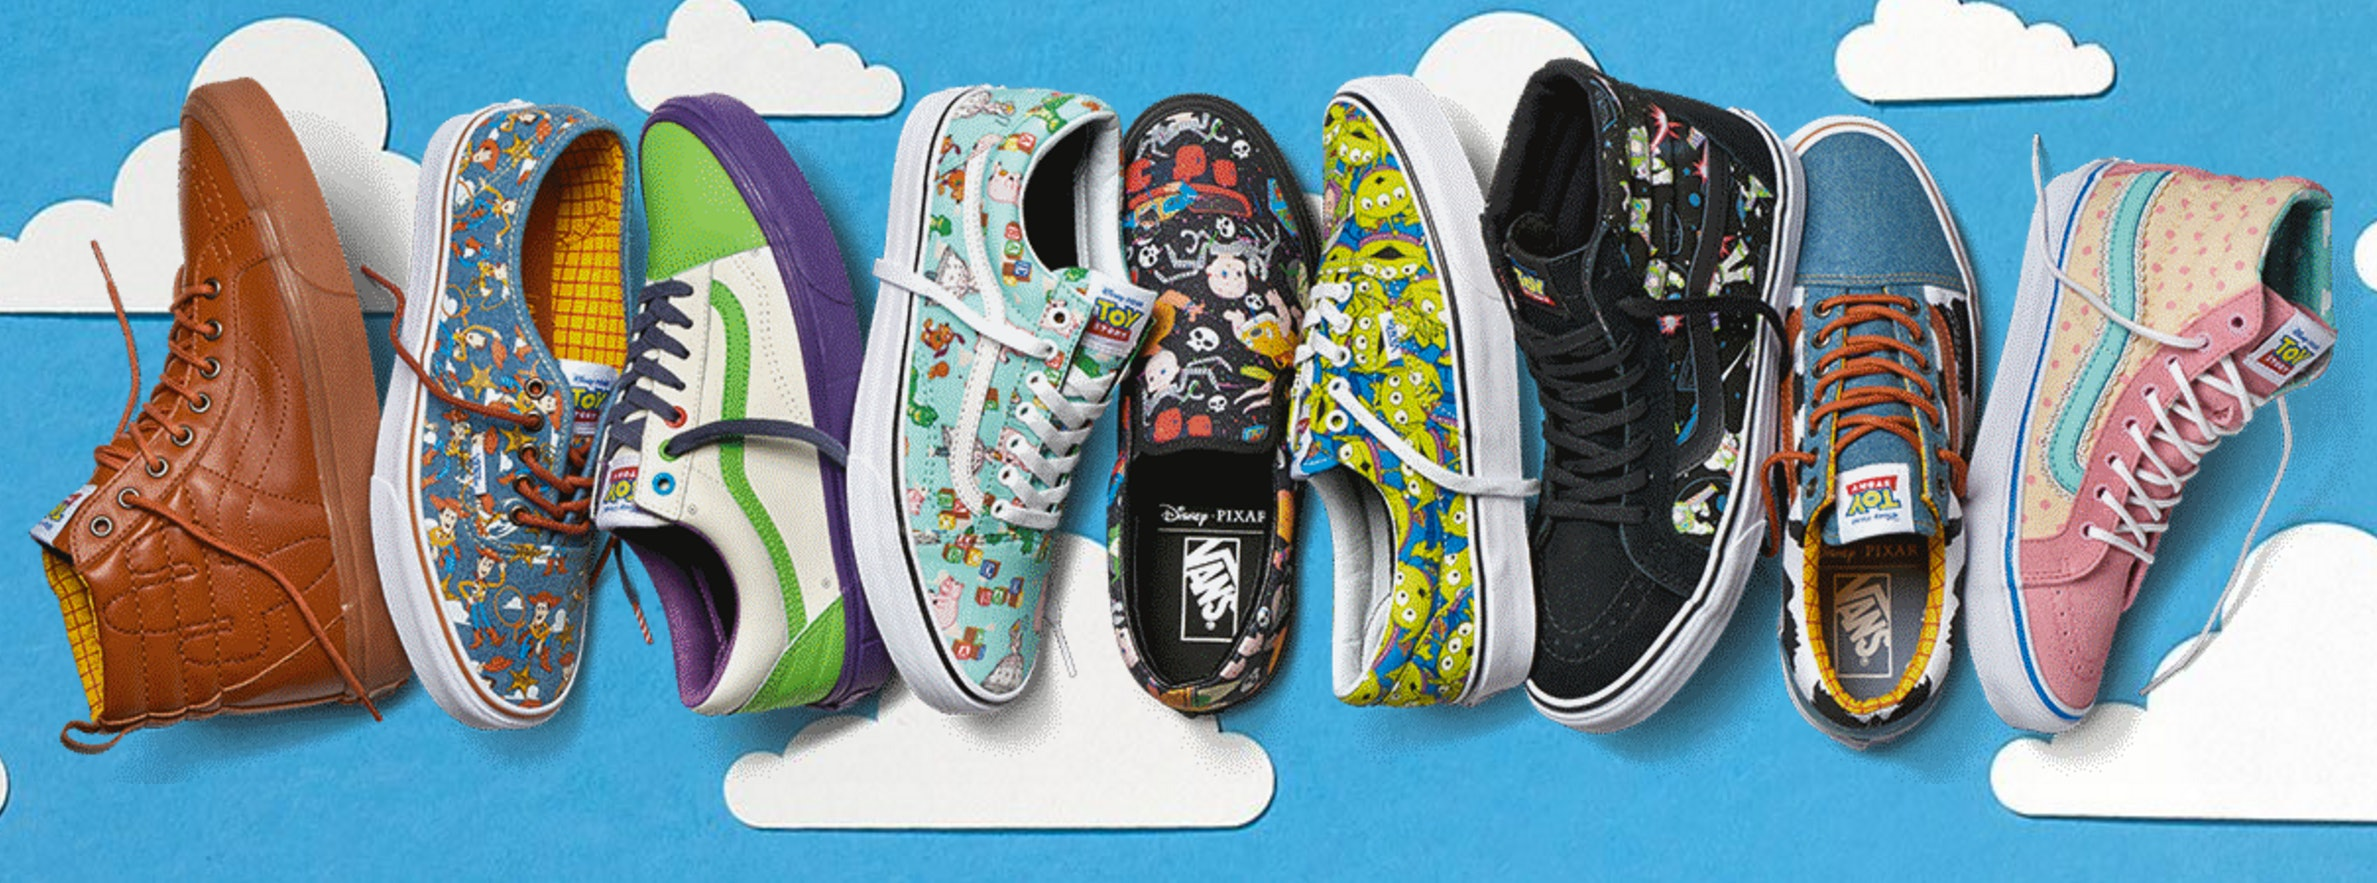 Vans X Toy Story Release